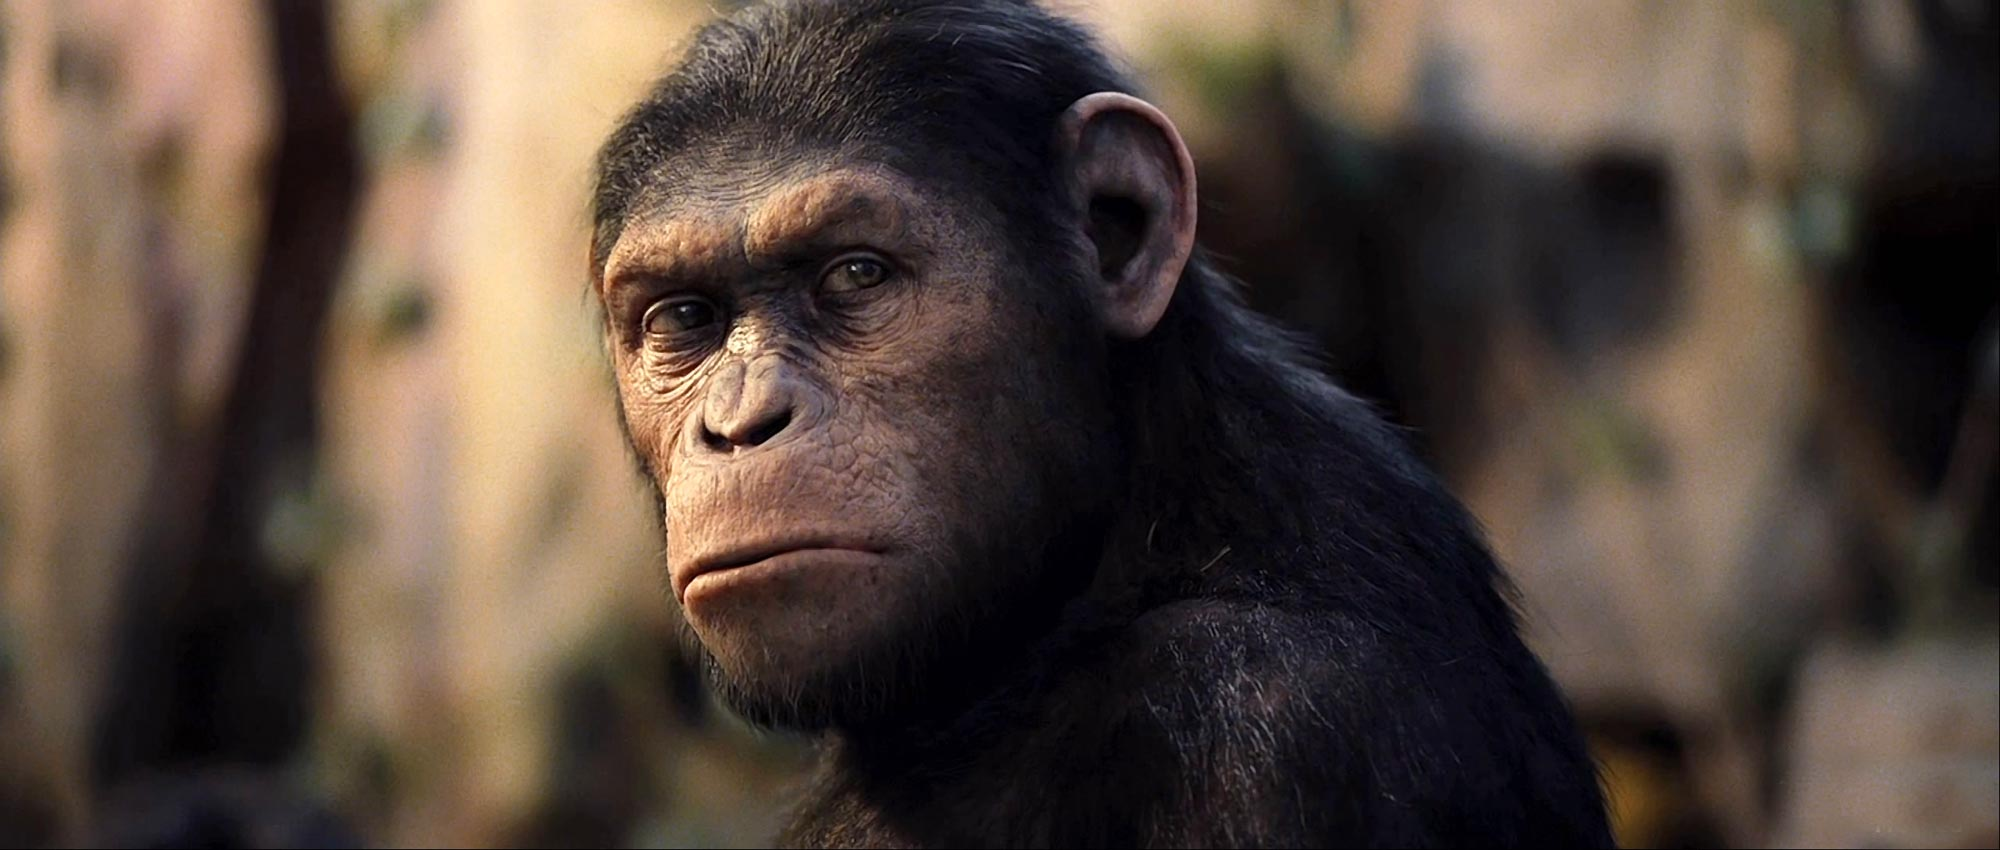 RISE OF THE PLANET OF THE APES (2011) Movie Trailer 3 | Film-